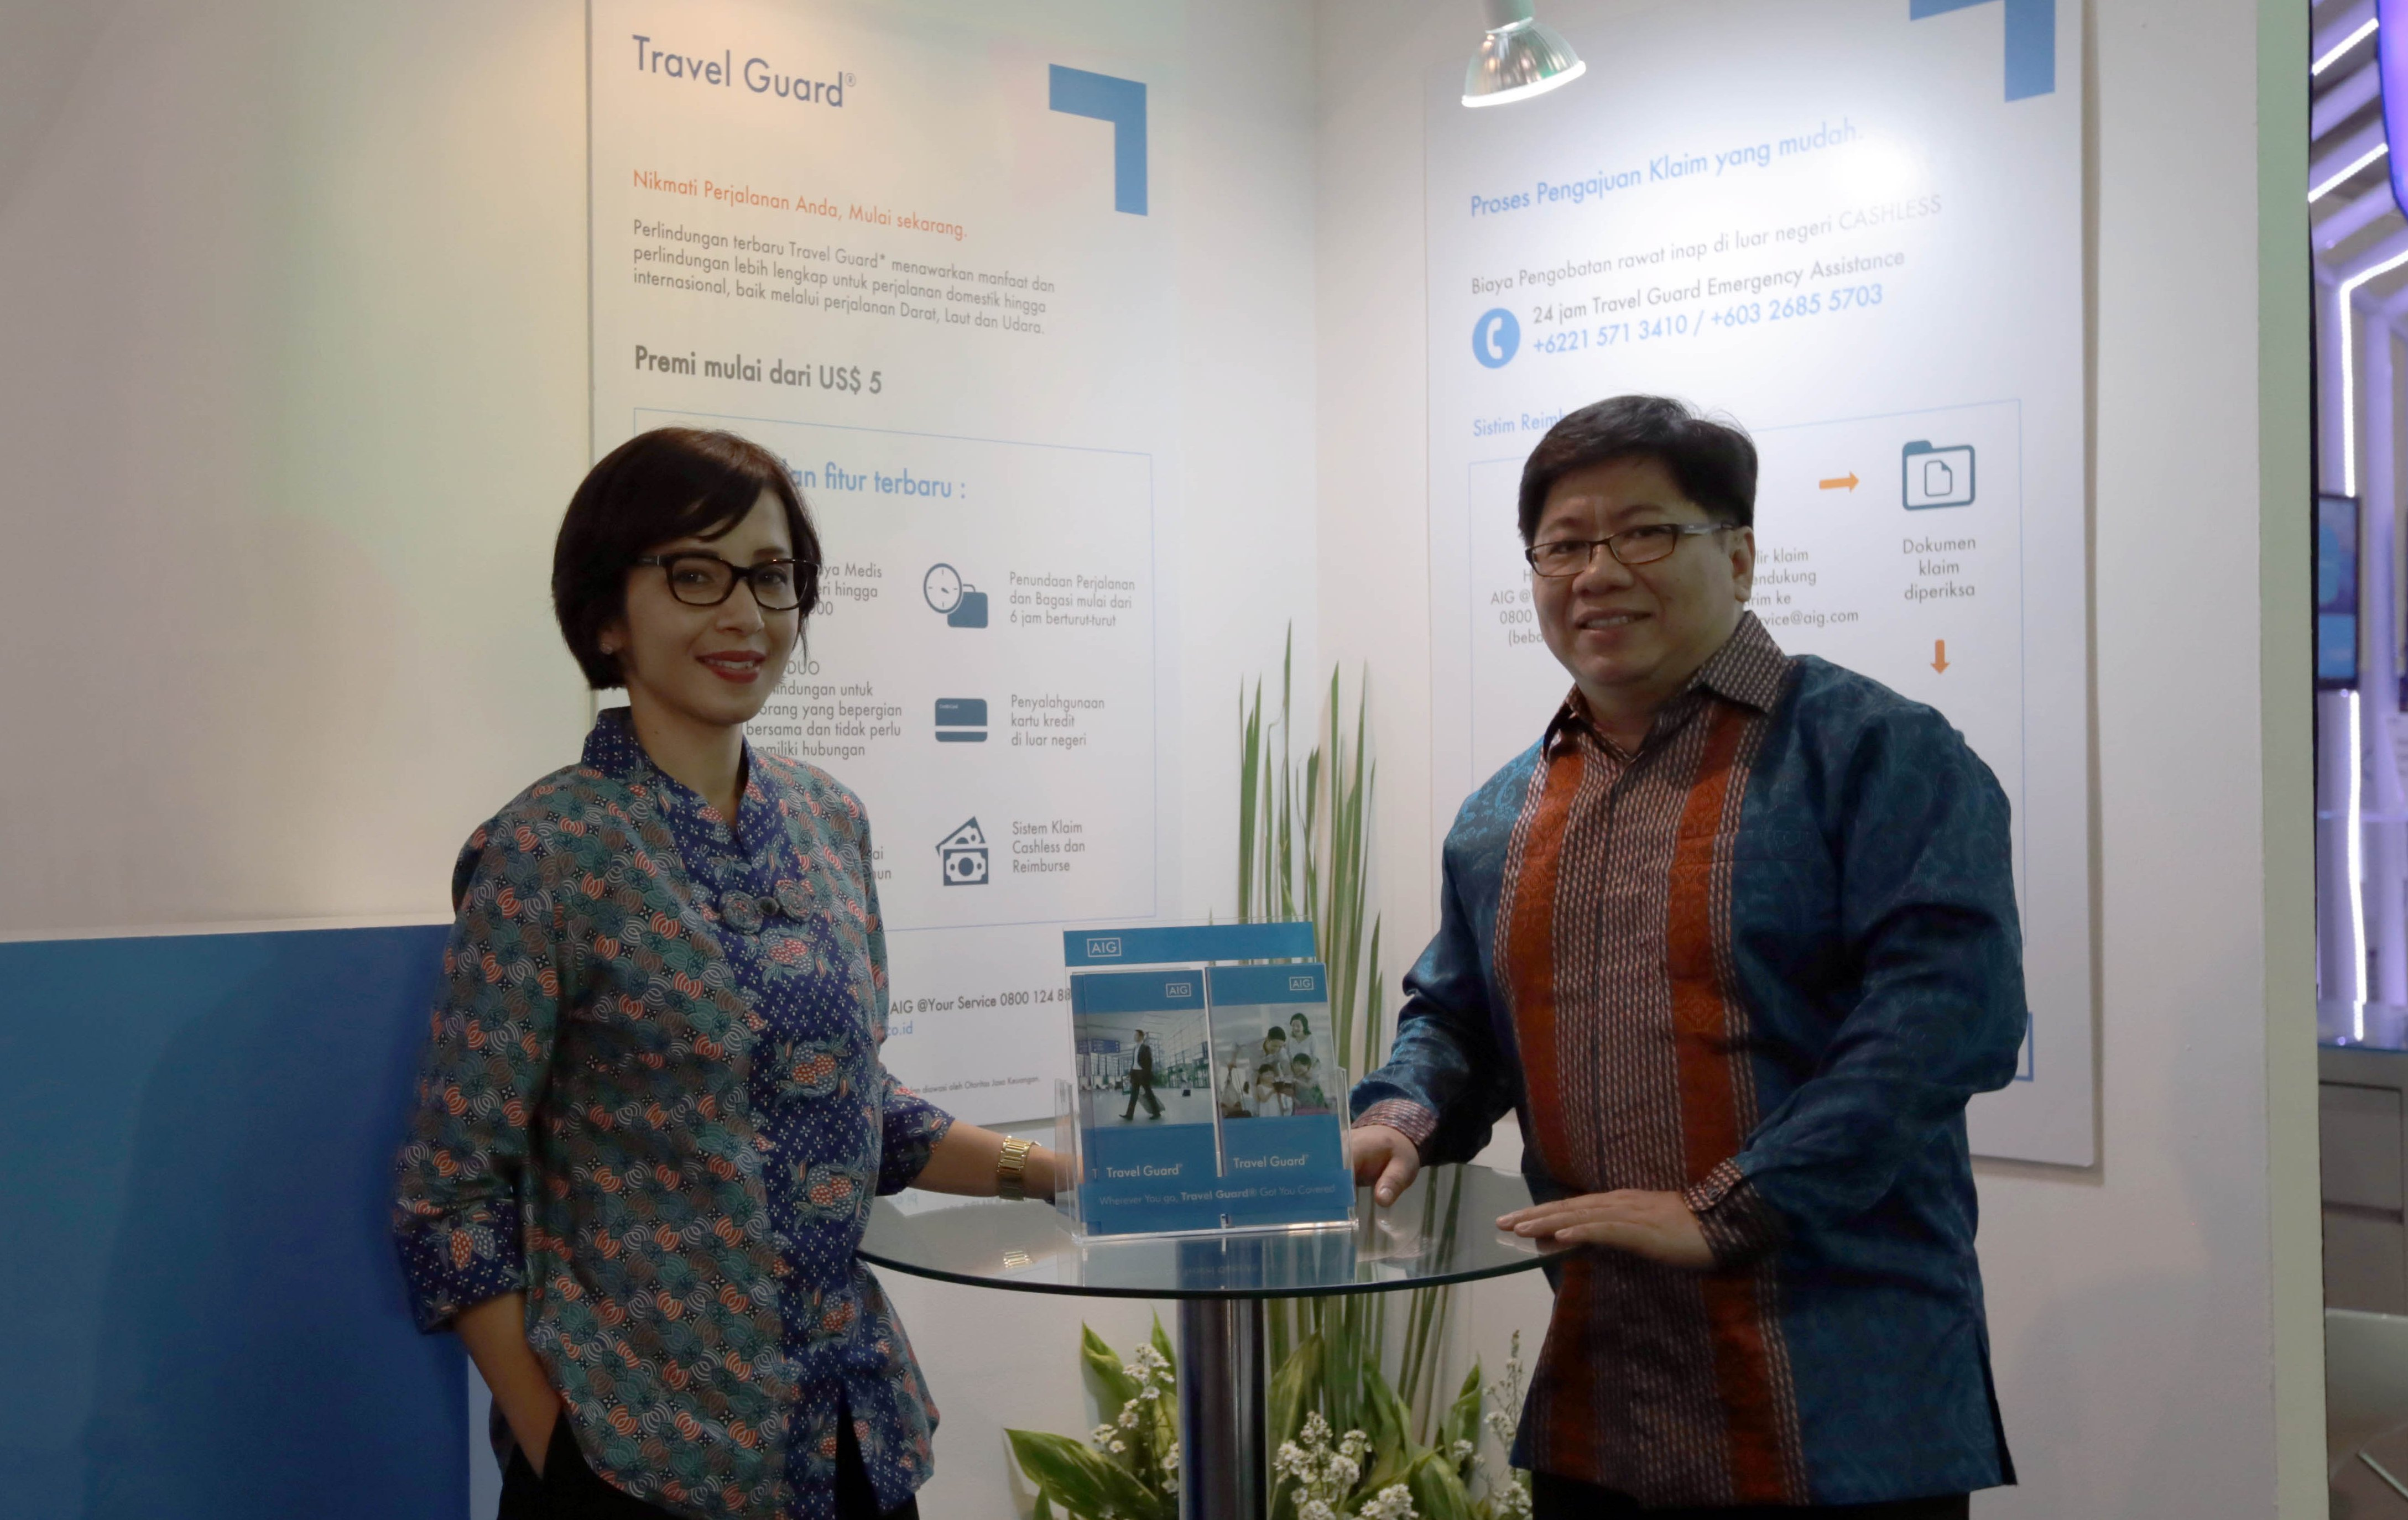 AIG INDONESIA ENHANCES ITS TRAVEL GUARD ® PRODUCT WITH EXTRA FEATURES